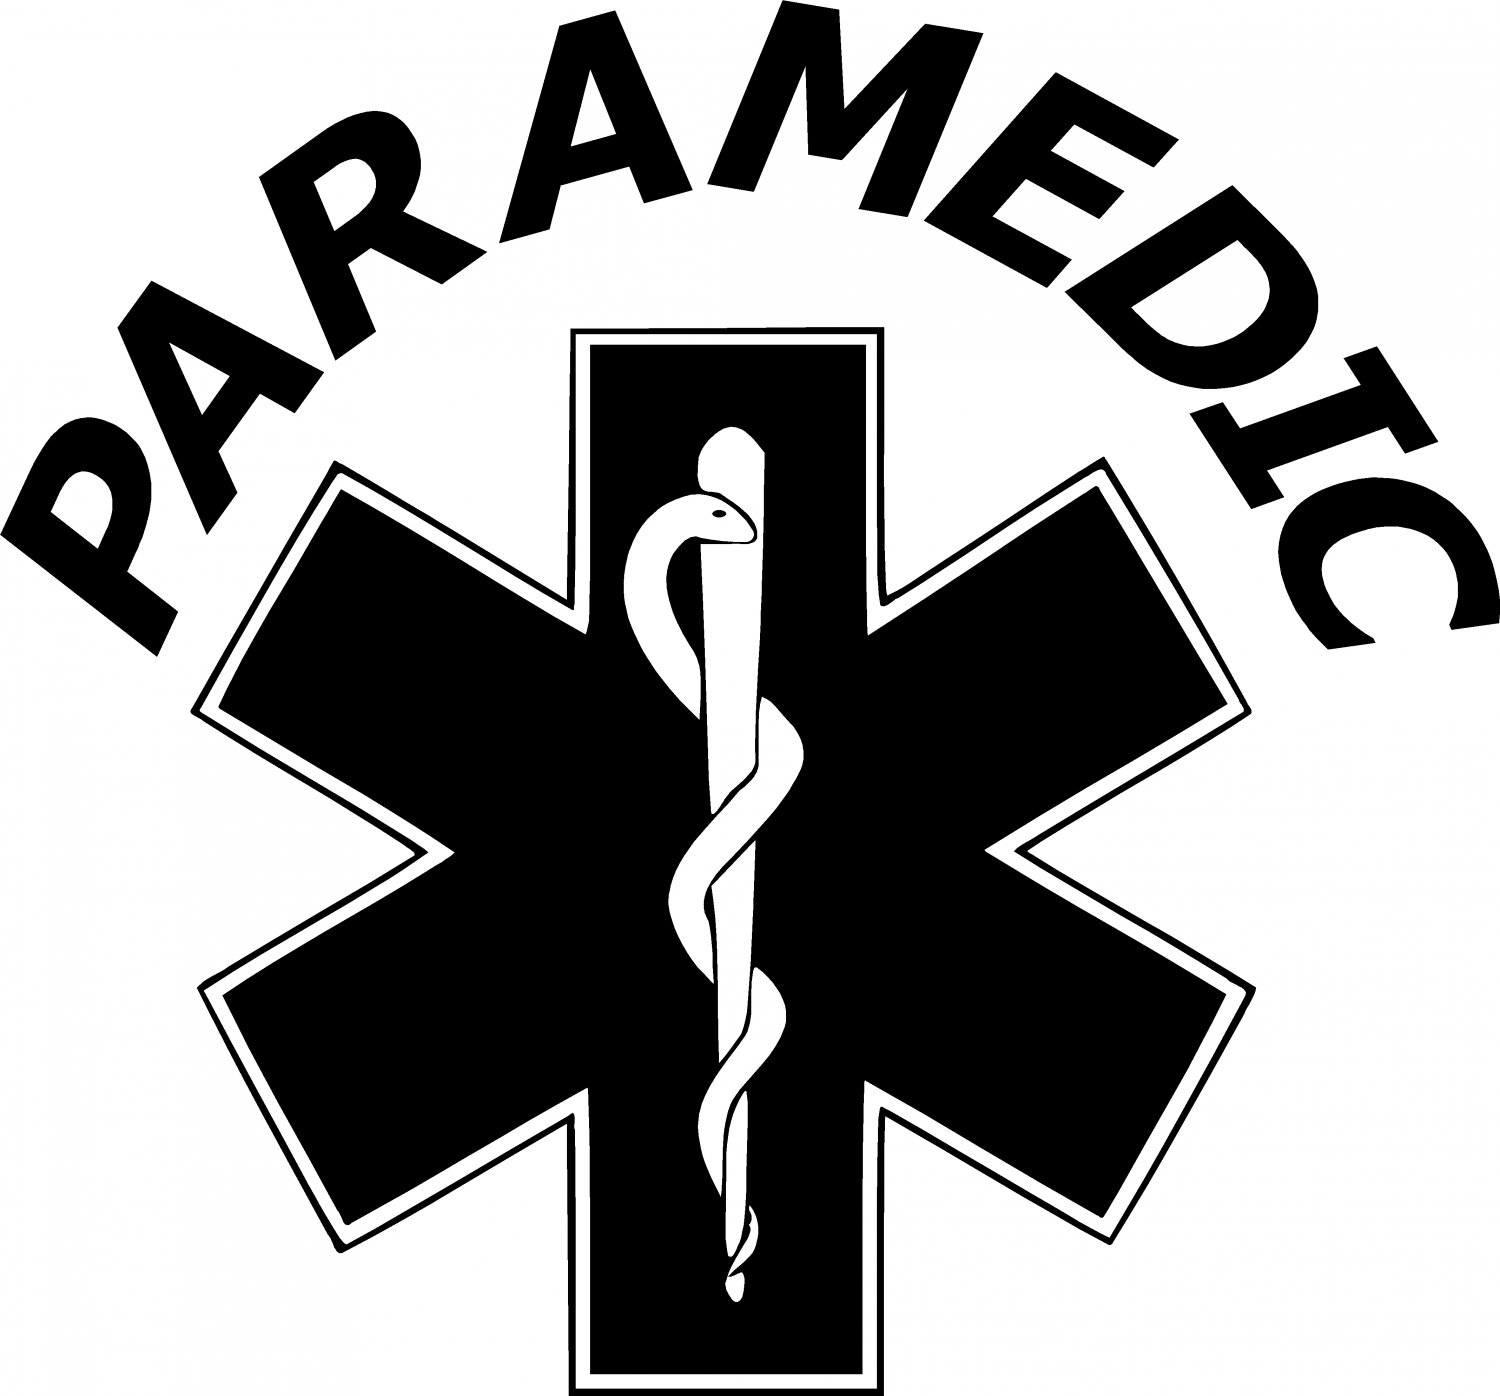 Paramedic Star Of Life Vinyl Decal Sticker